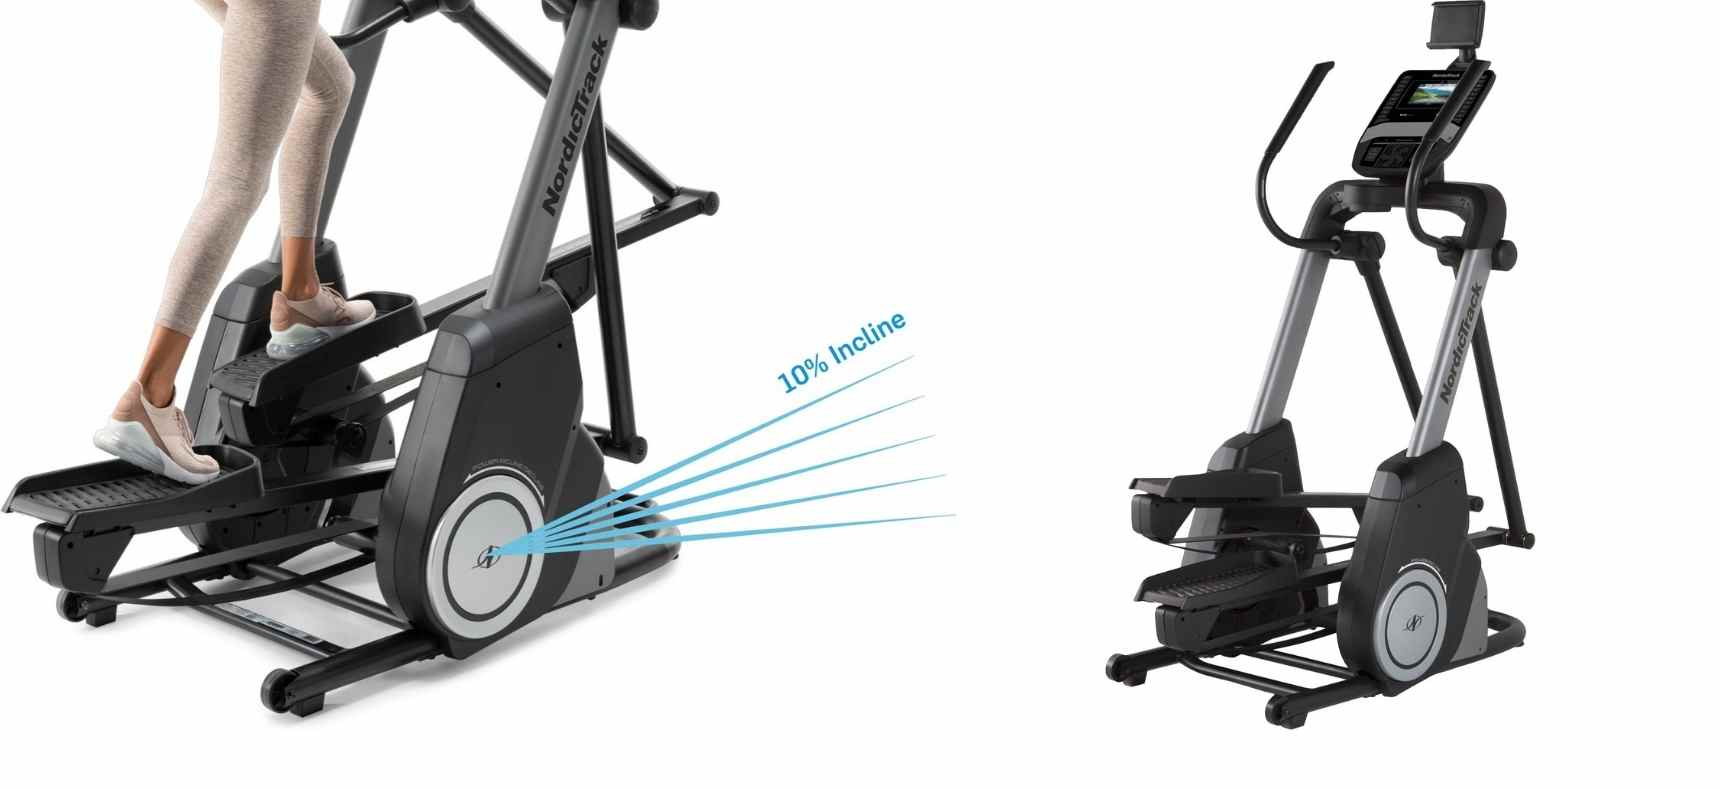 Nordictrack elliptical reviews